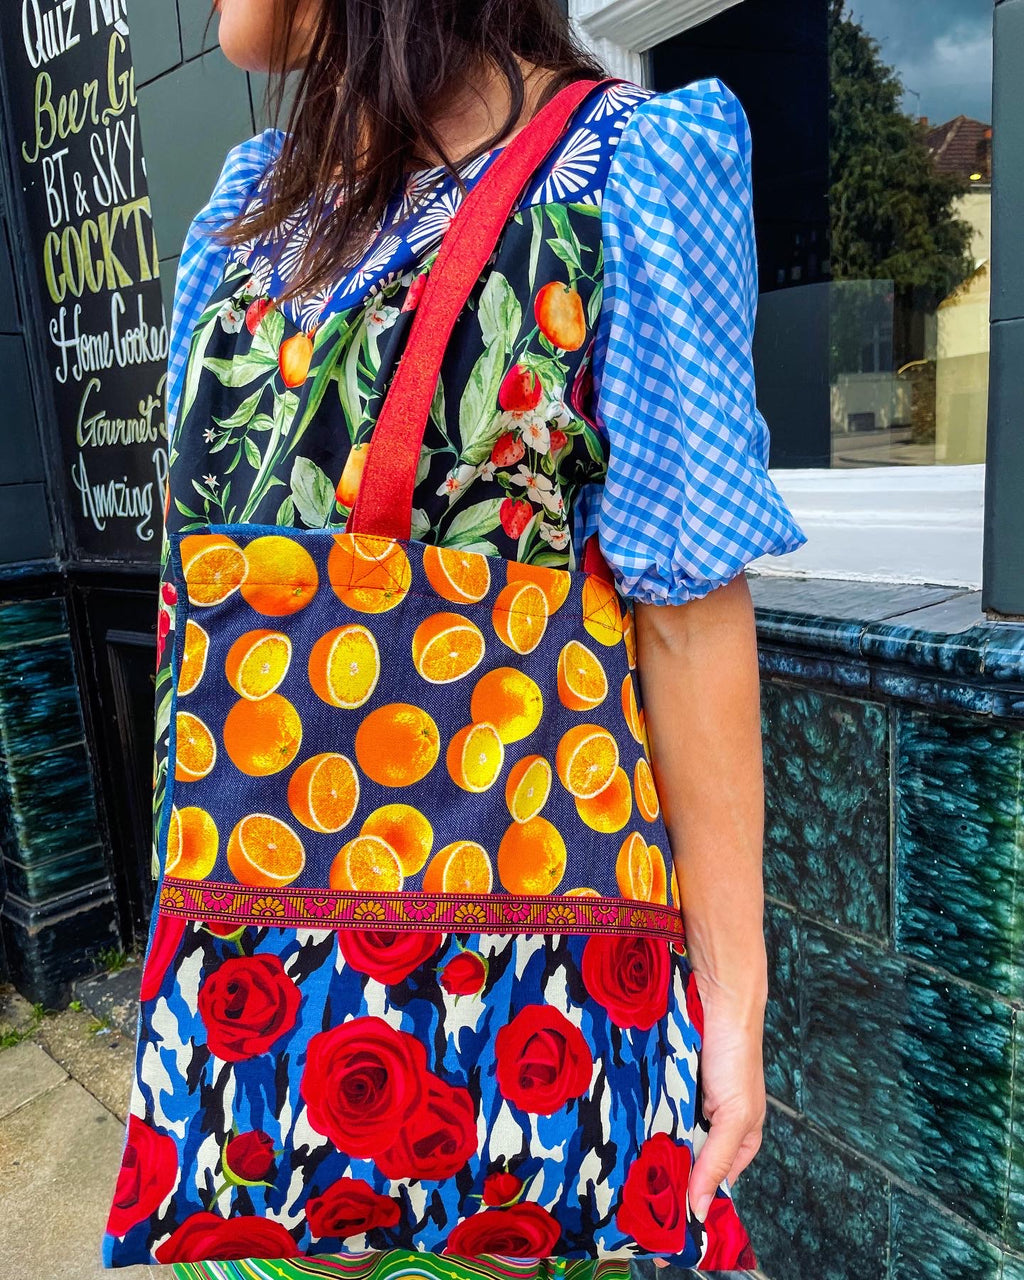 The 'Sunshine on my Shoulders' tote bag